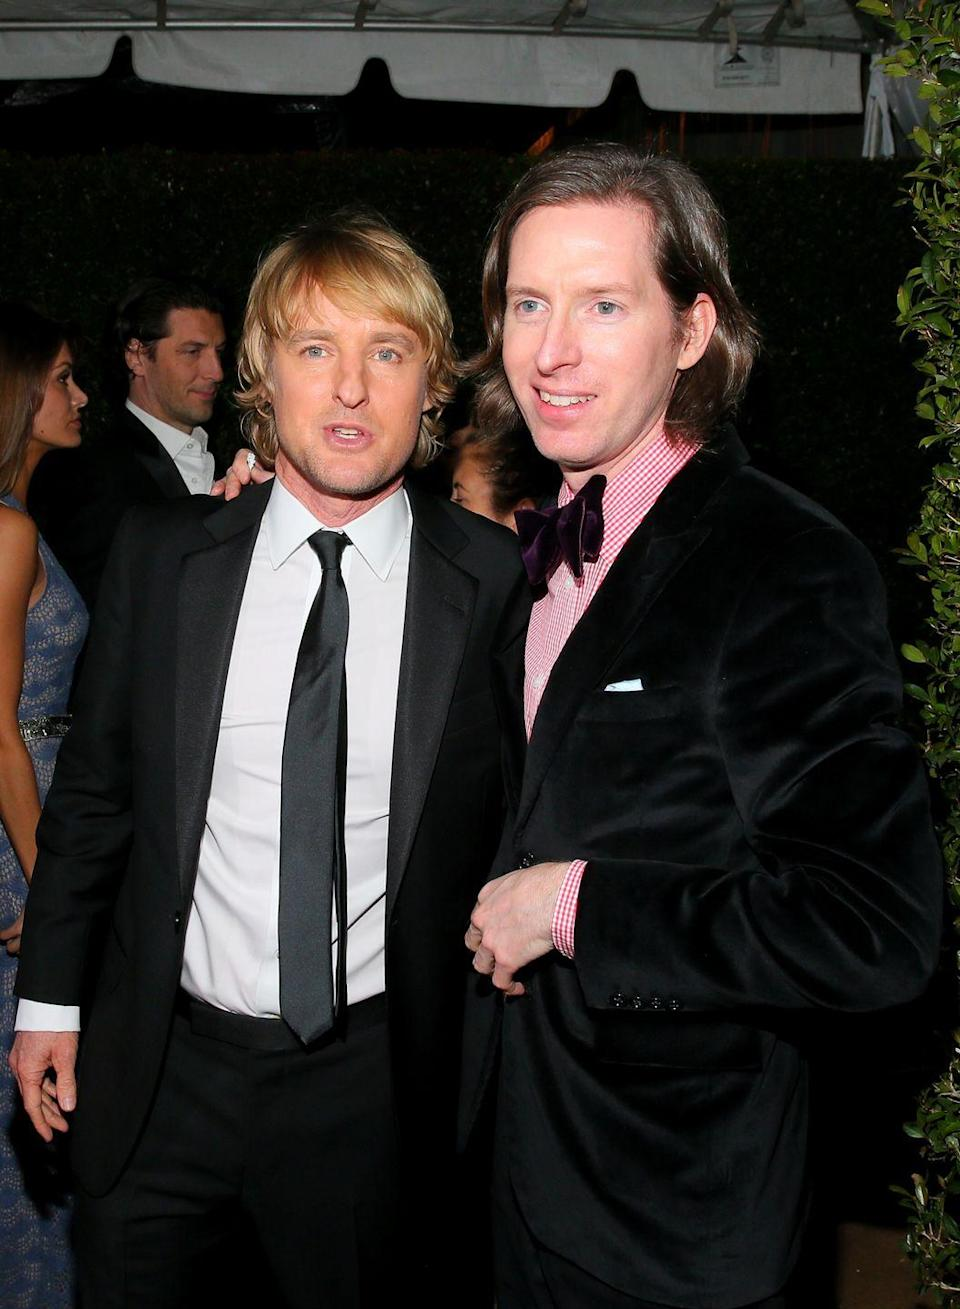 "<p>University of Texas alums Owen Wilson and Wes Anderson got into their fair share of trouble during the days on The Forty Acres. One especially hilarious adventure involved literally breaking into their shared Austin apartment—the incident would serve as the inspiration for Anderson's first feature film, <em>Bottle Rocket</em>. The dynamic duo's rapport stayed strong for years after college. ""I feel like that's as strong a friendship now as it's ever been,"" <a href=""https://www.laweekly.com/the-road-wes-traveled/"" rel=""nofollow noopener"" target=""_blank"" data-ylk=""slk:said"" class=""link rapid-noclick-resp"">said</a> the filmmaker of his connection with Wilson in 1999. ""And we still have several movies we want to do together.""</p>"